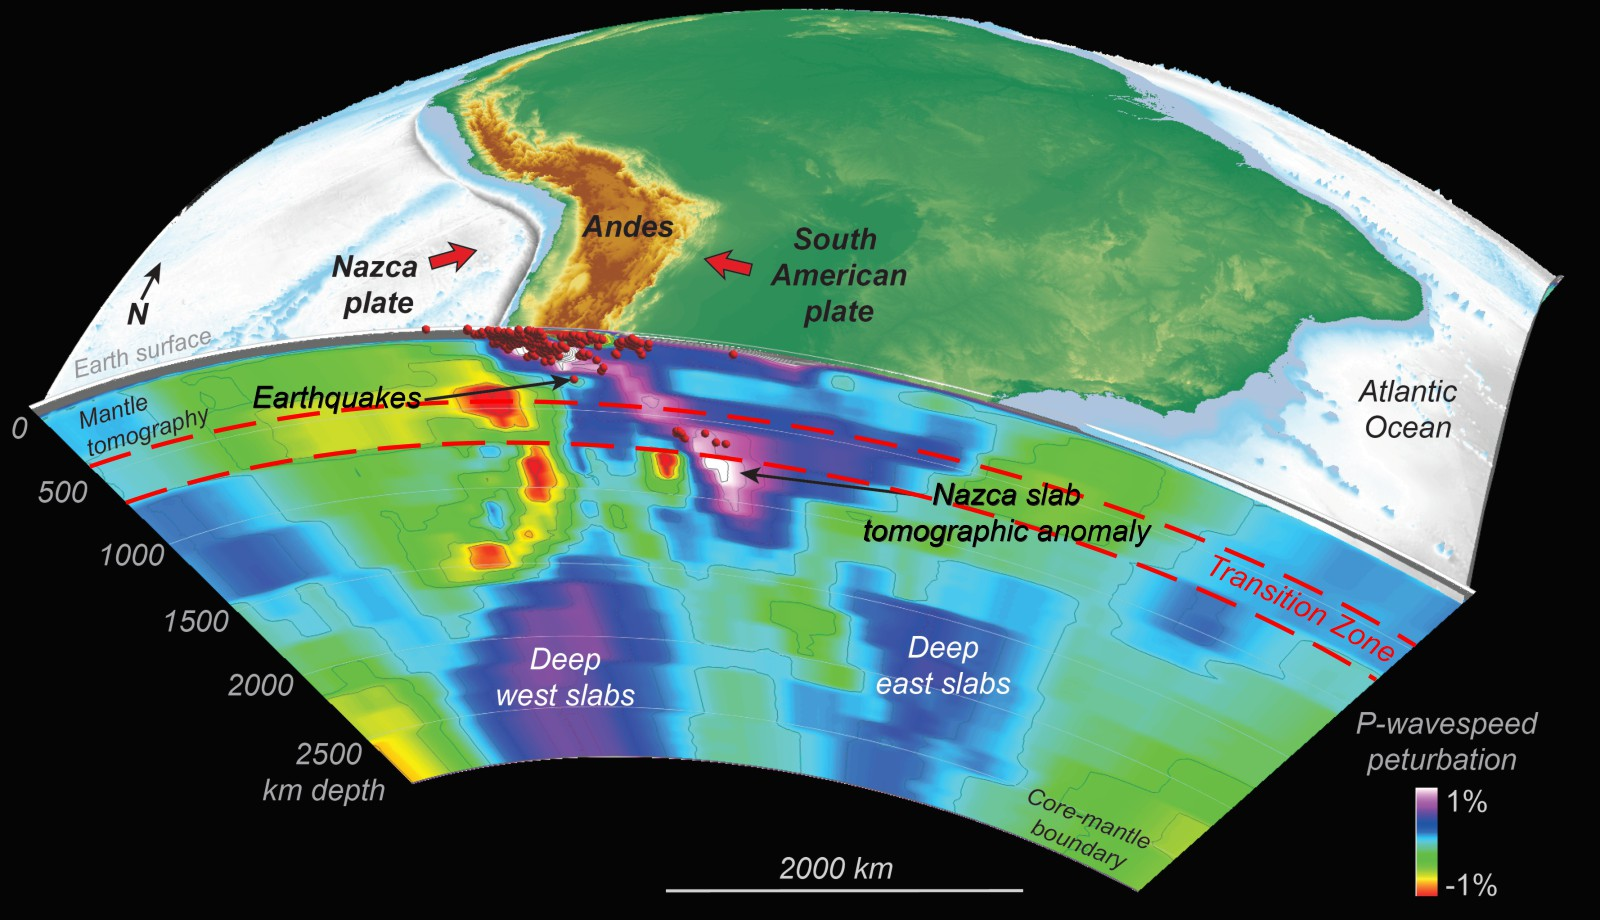 A slice through Earth's mantle under the Andes.